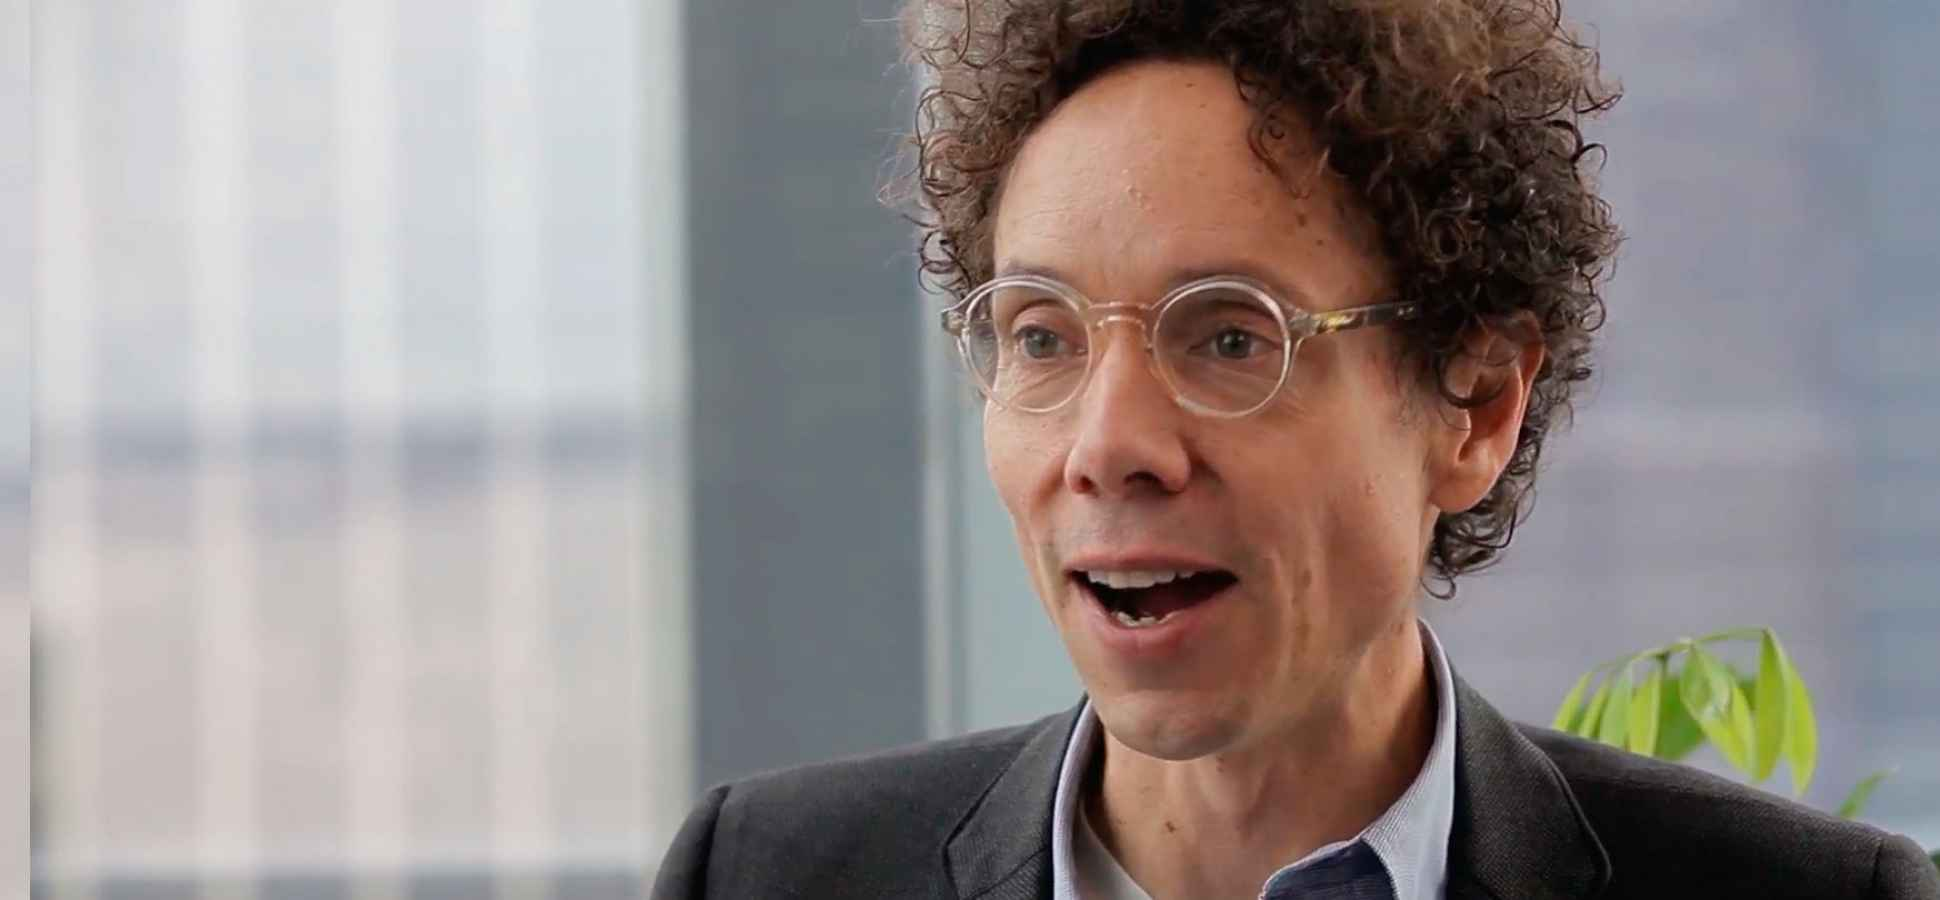 Malcolm Gladwell on the Secret to Building Self-Confidence